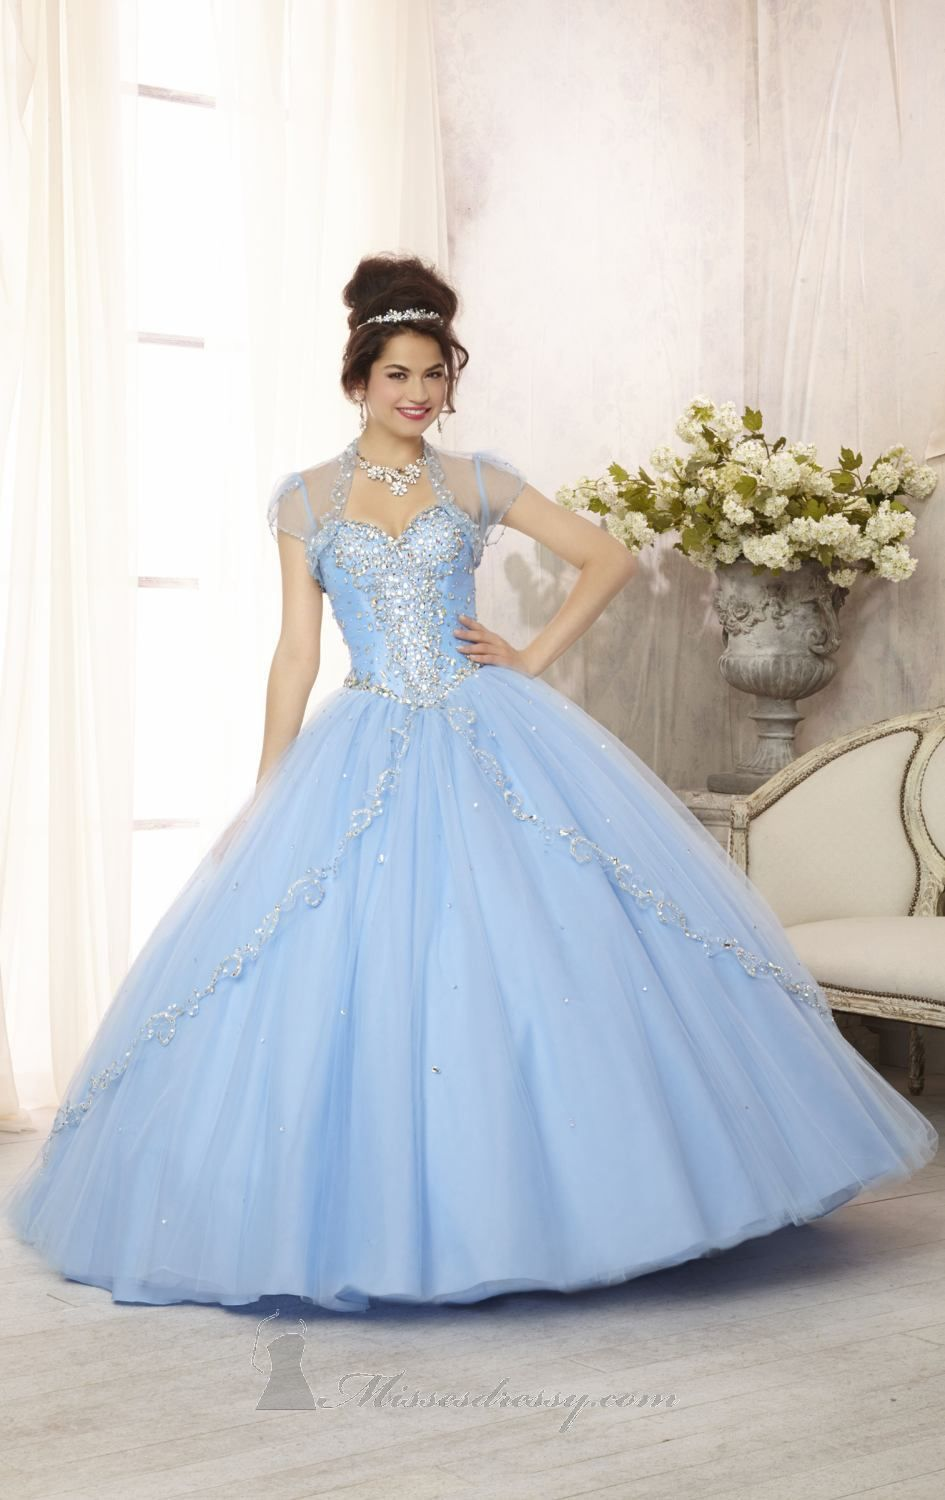 Pale blue layered tule with embellished top ballgown trajes